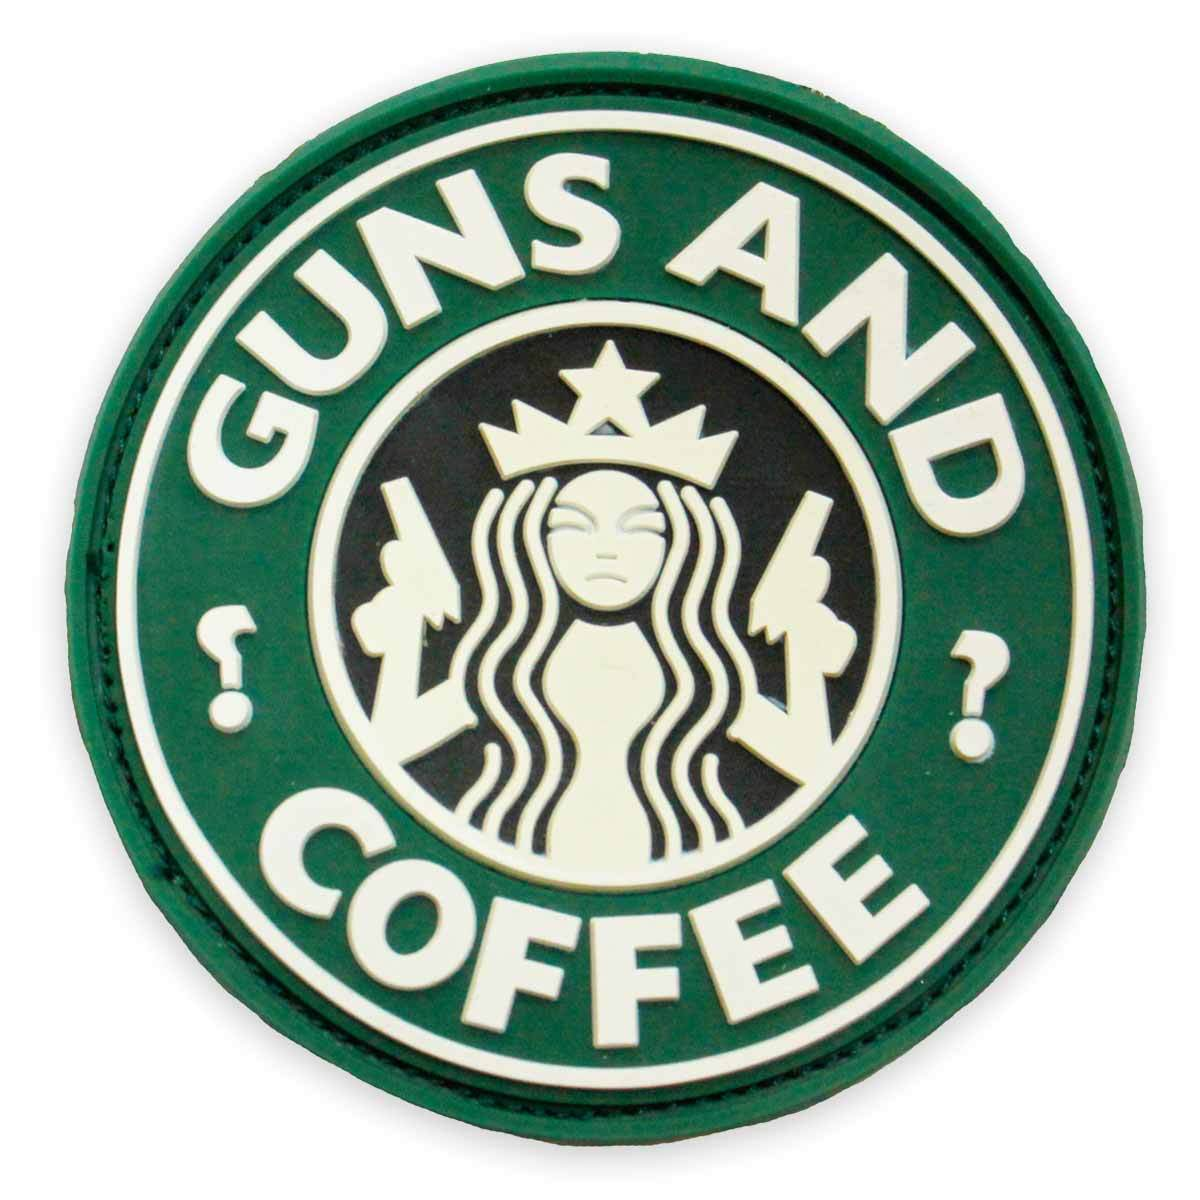 3D PVC Guns and Coffee Patch | UKMCPro